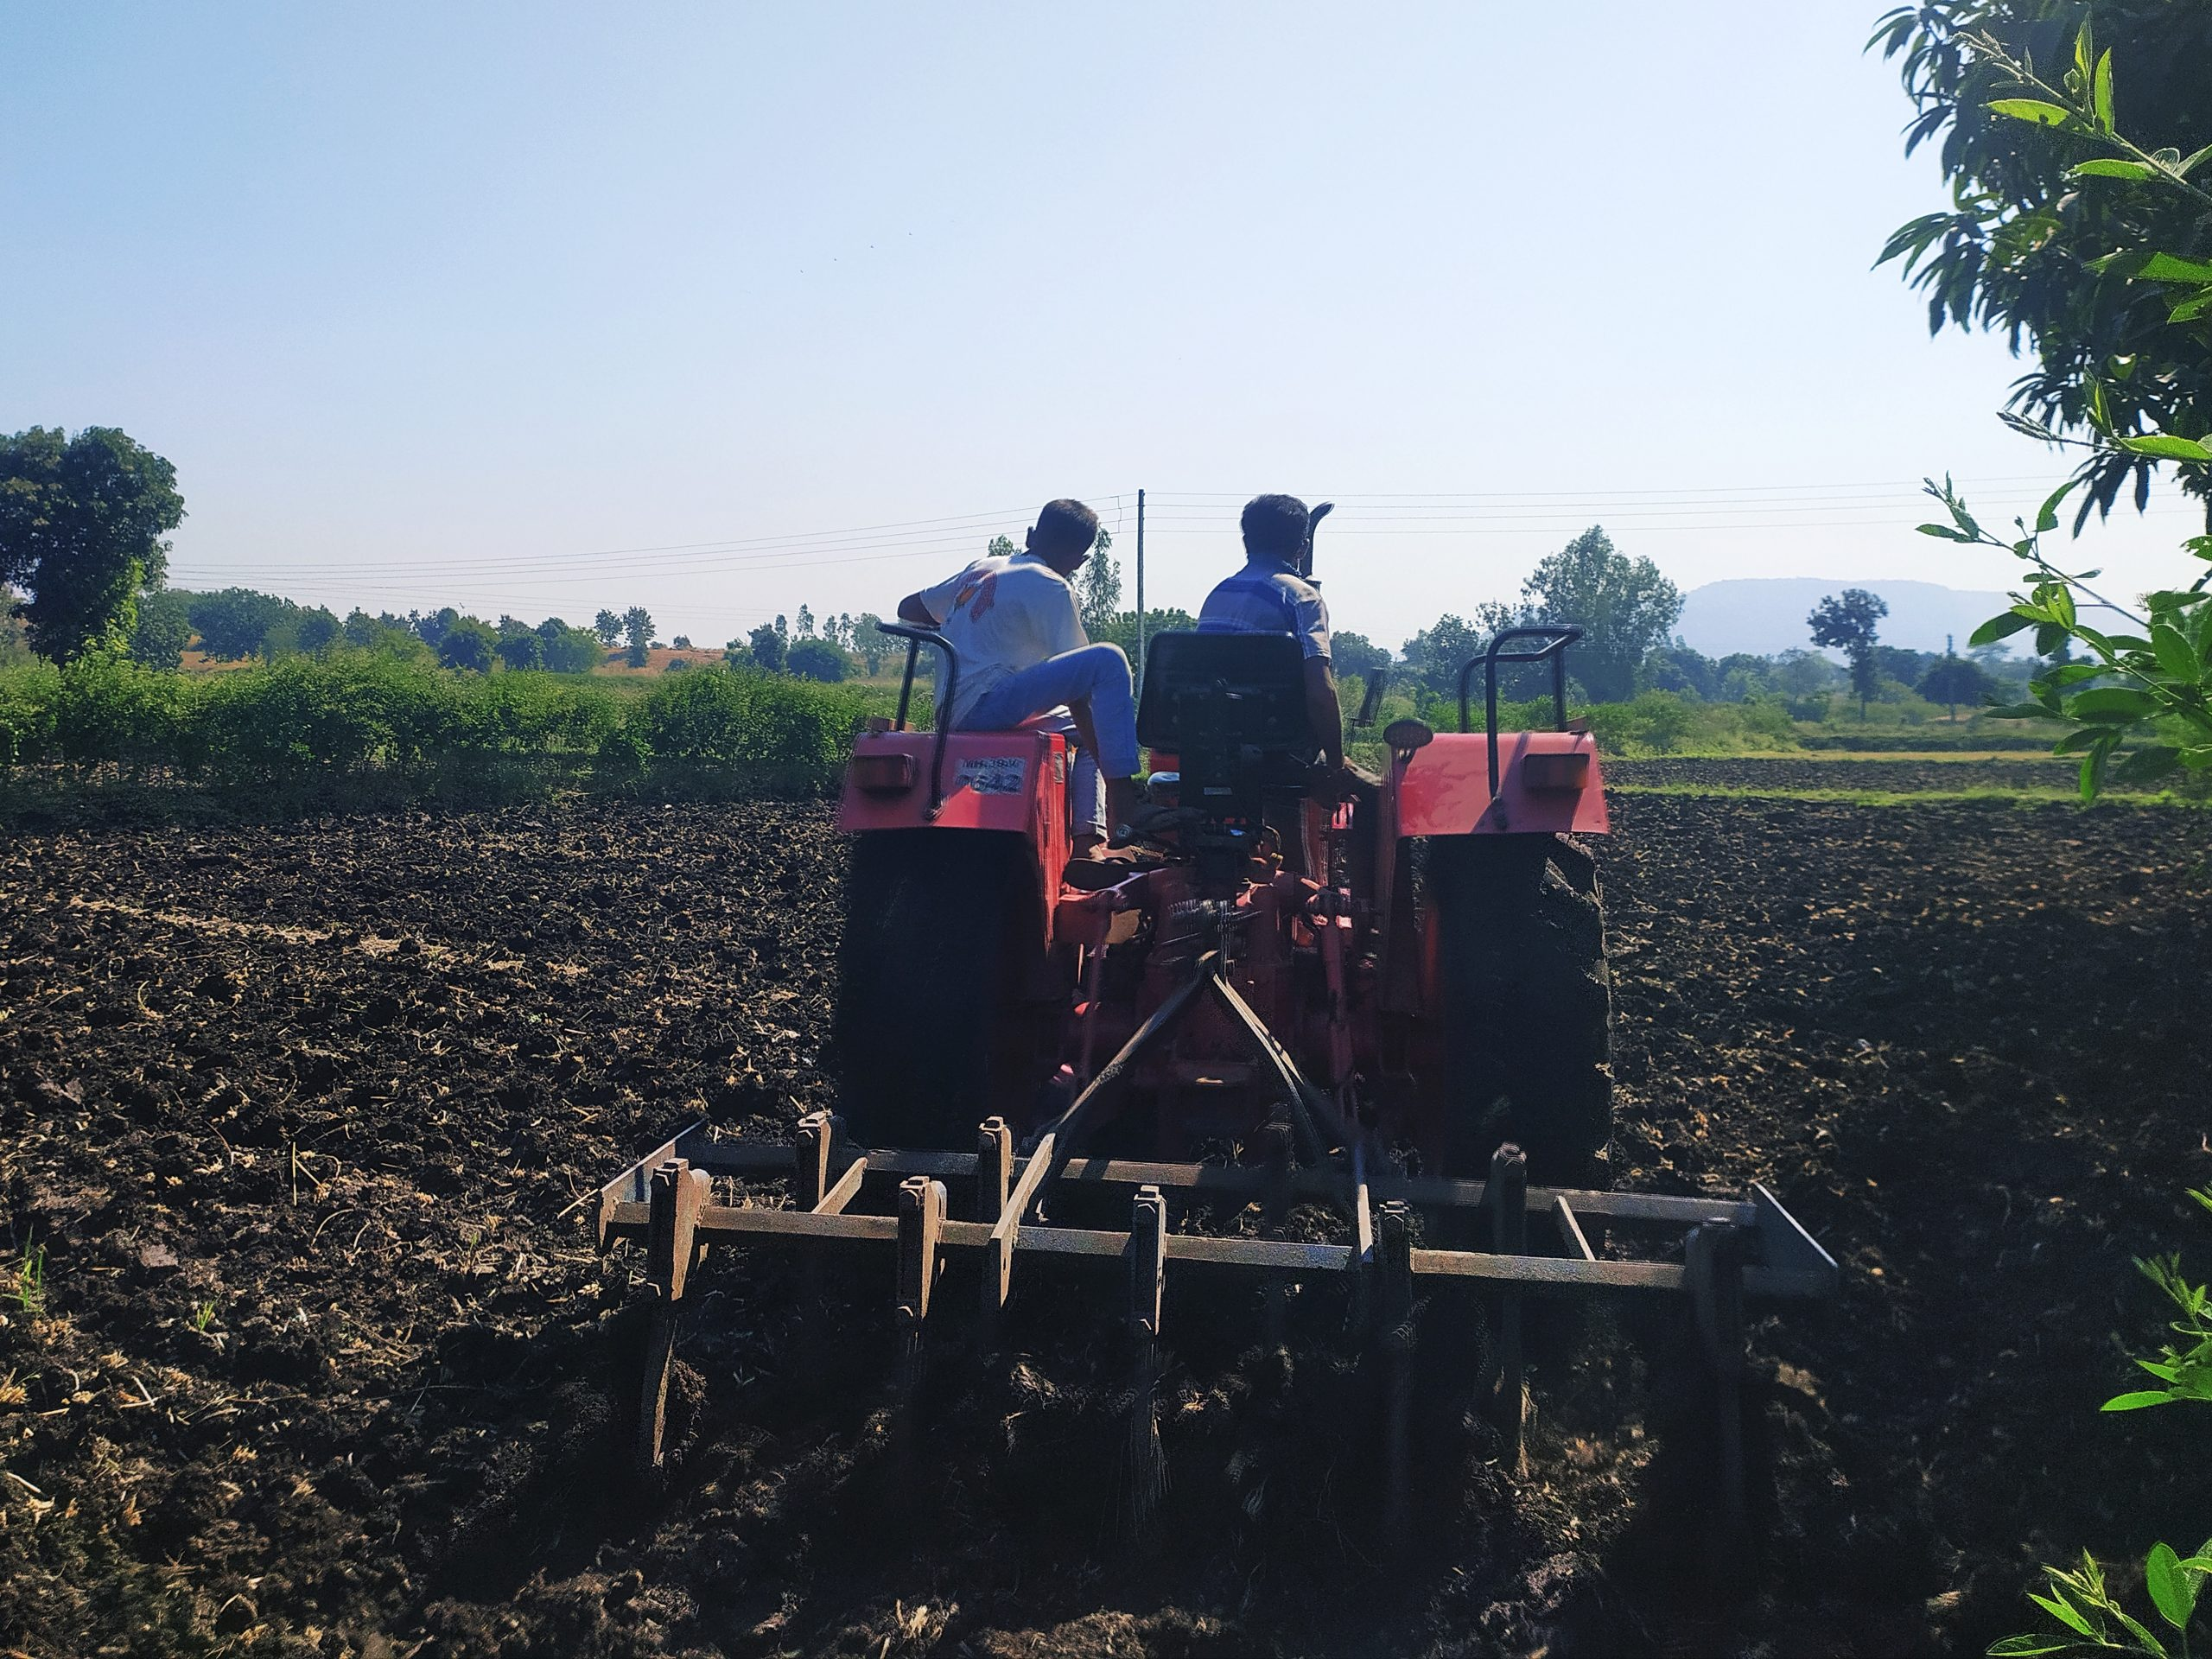 A tractor cultivating a field